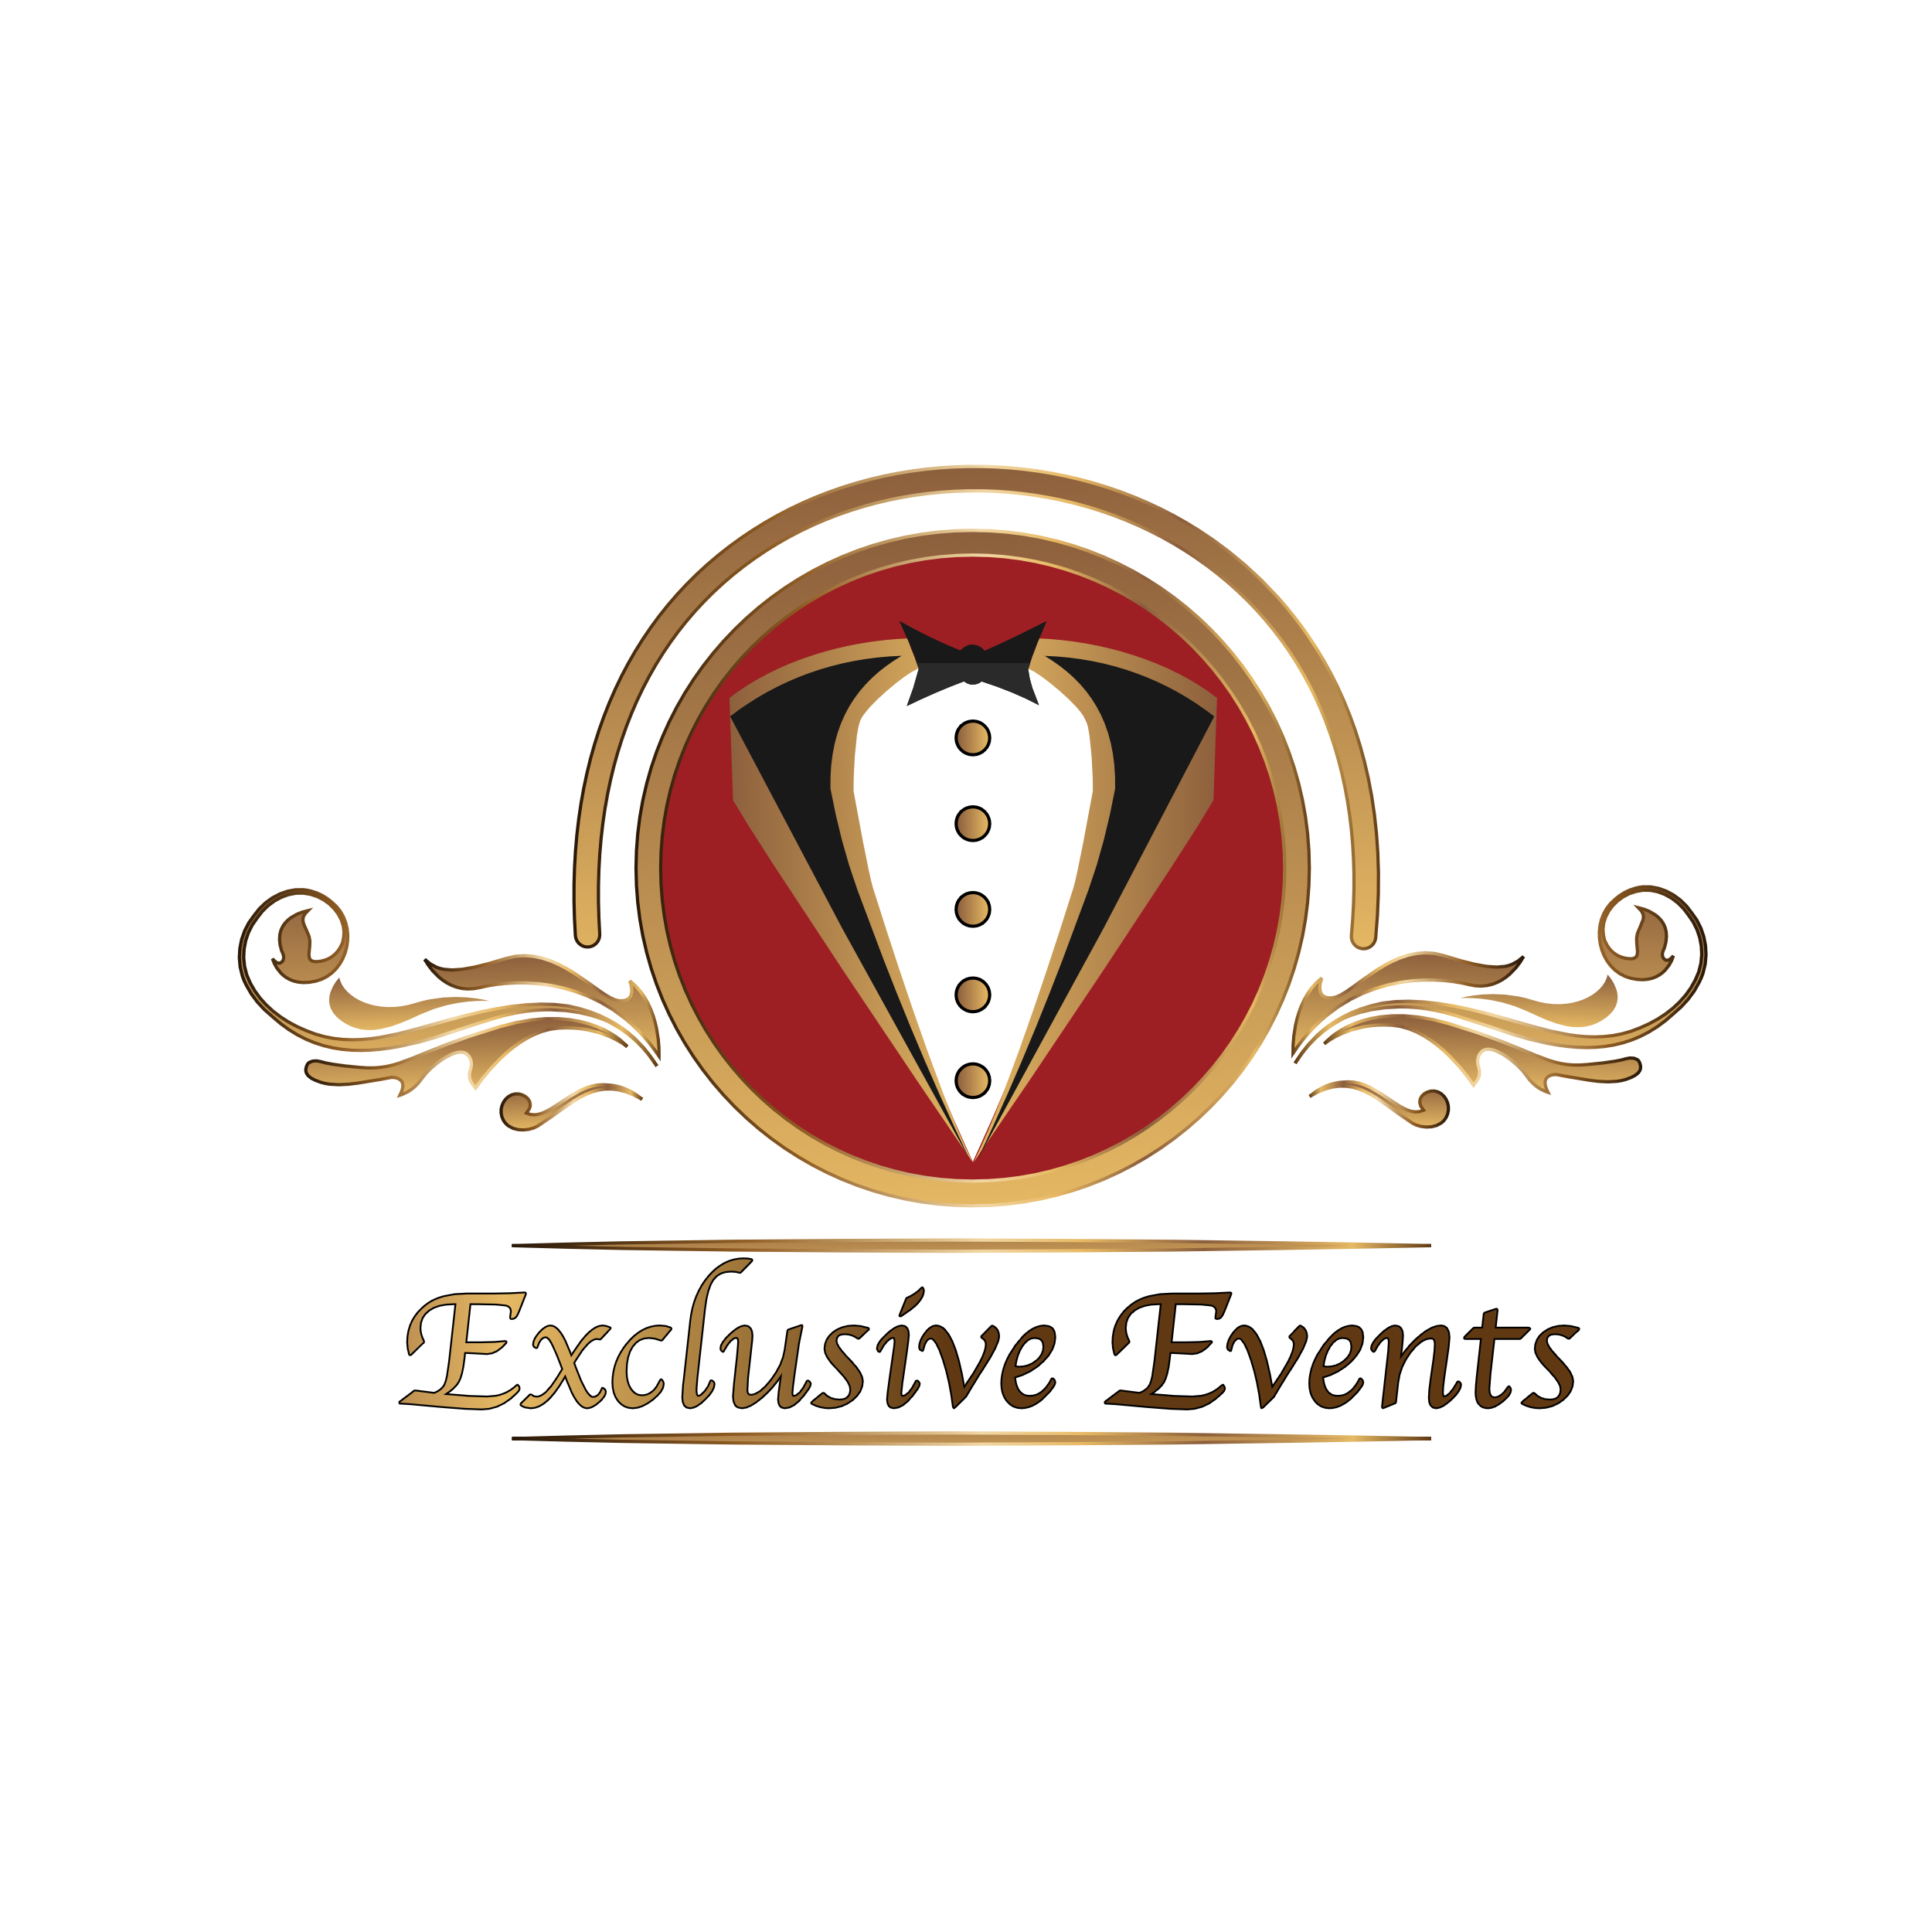 Exclusive events ICED Solutions